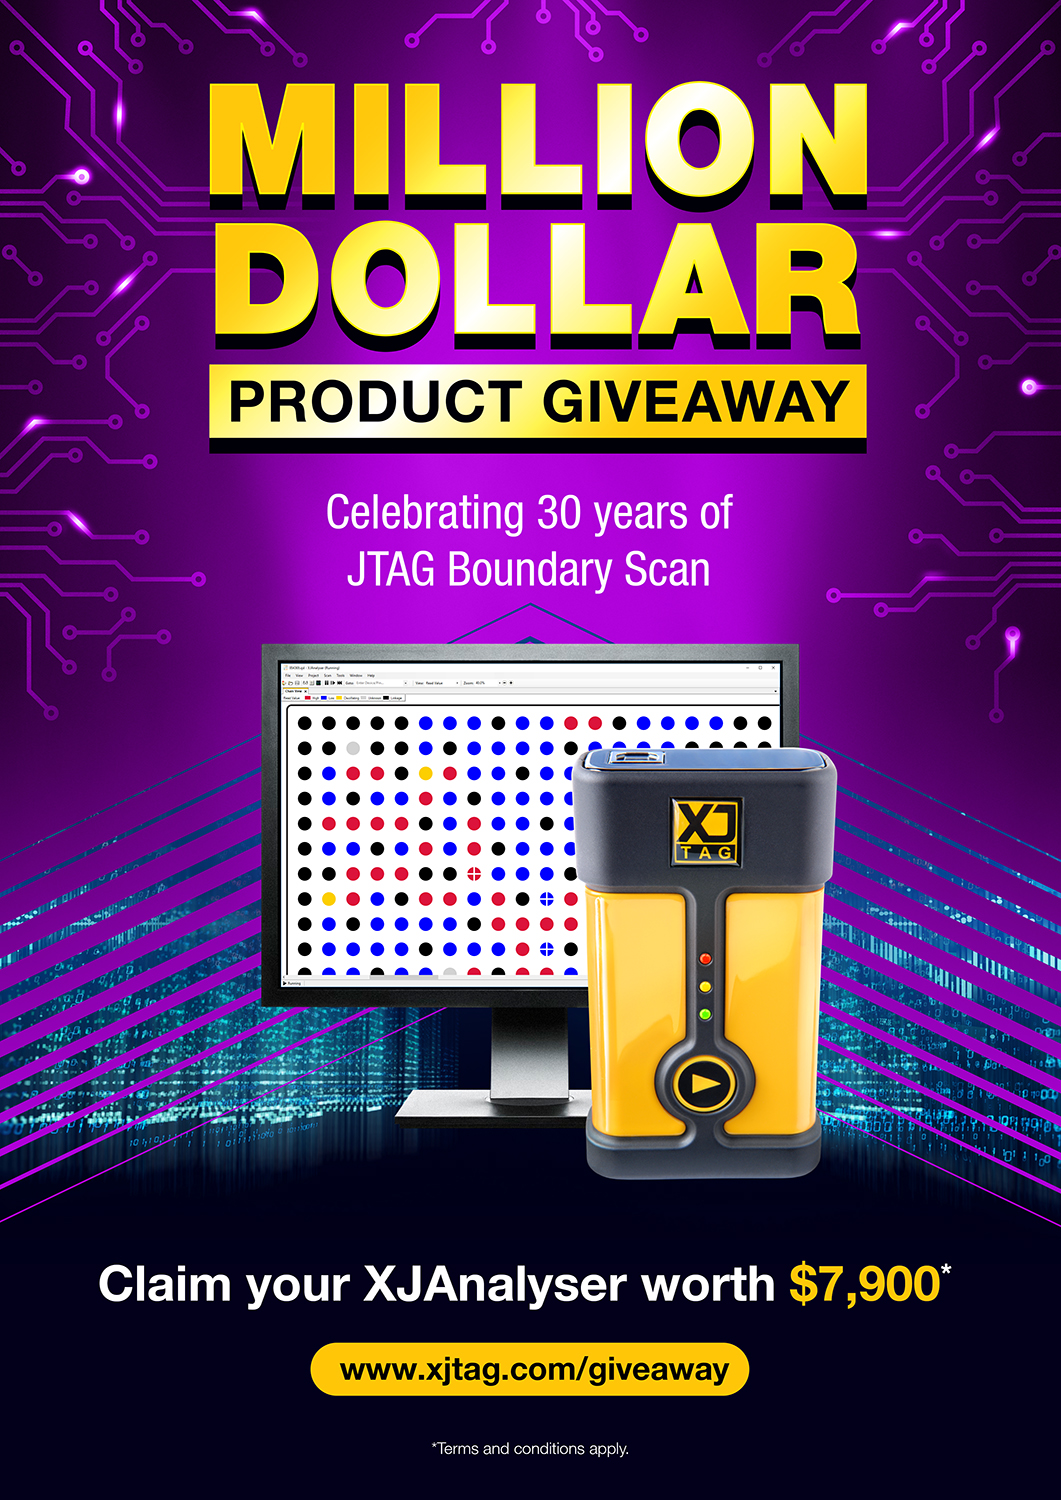 XJTAG Million Dollar Product Giveaway